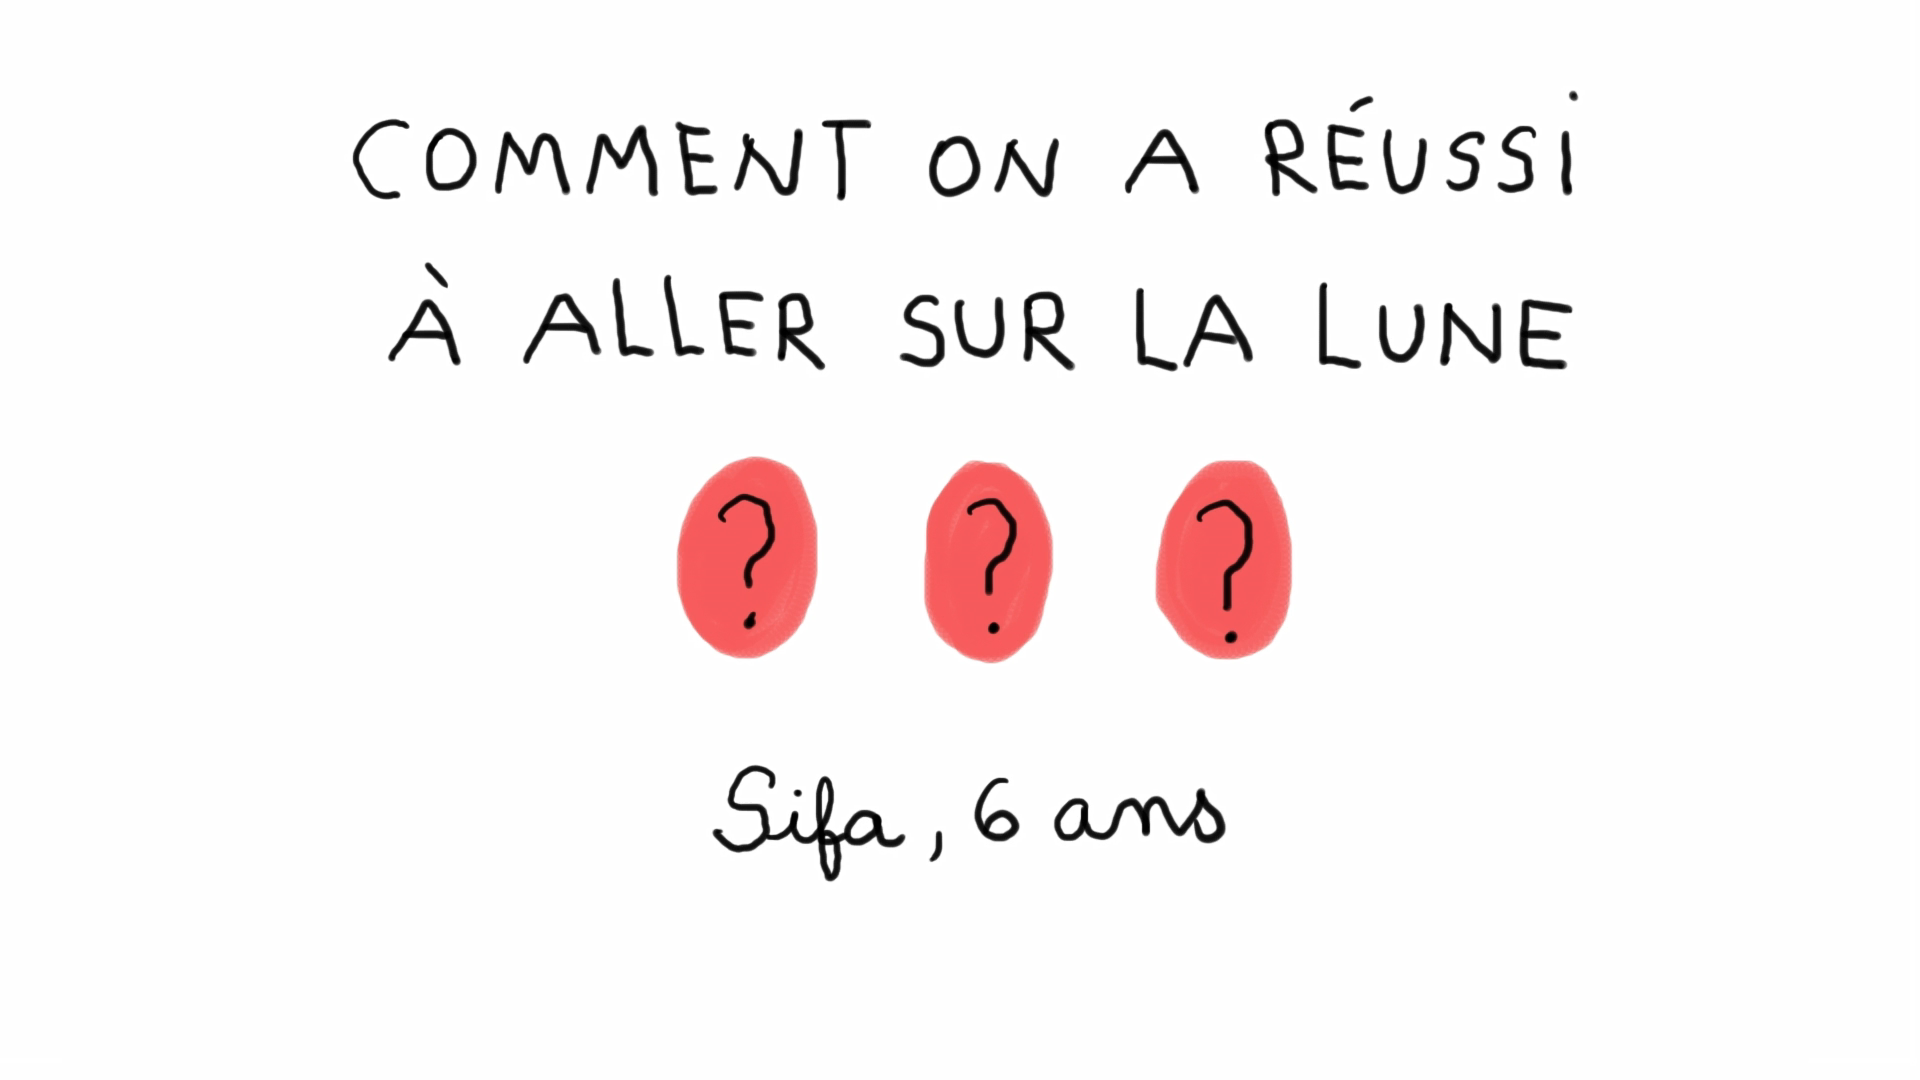 Comment on a réussi à aller sur la Lune? 1 jour 1 question.